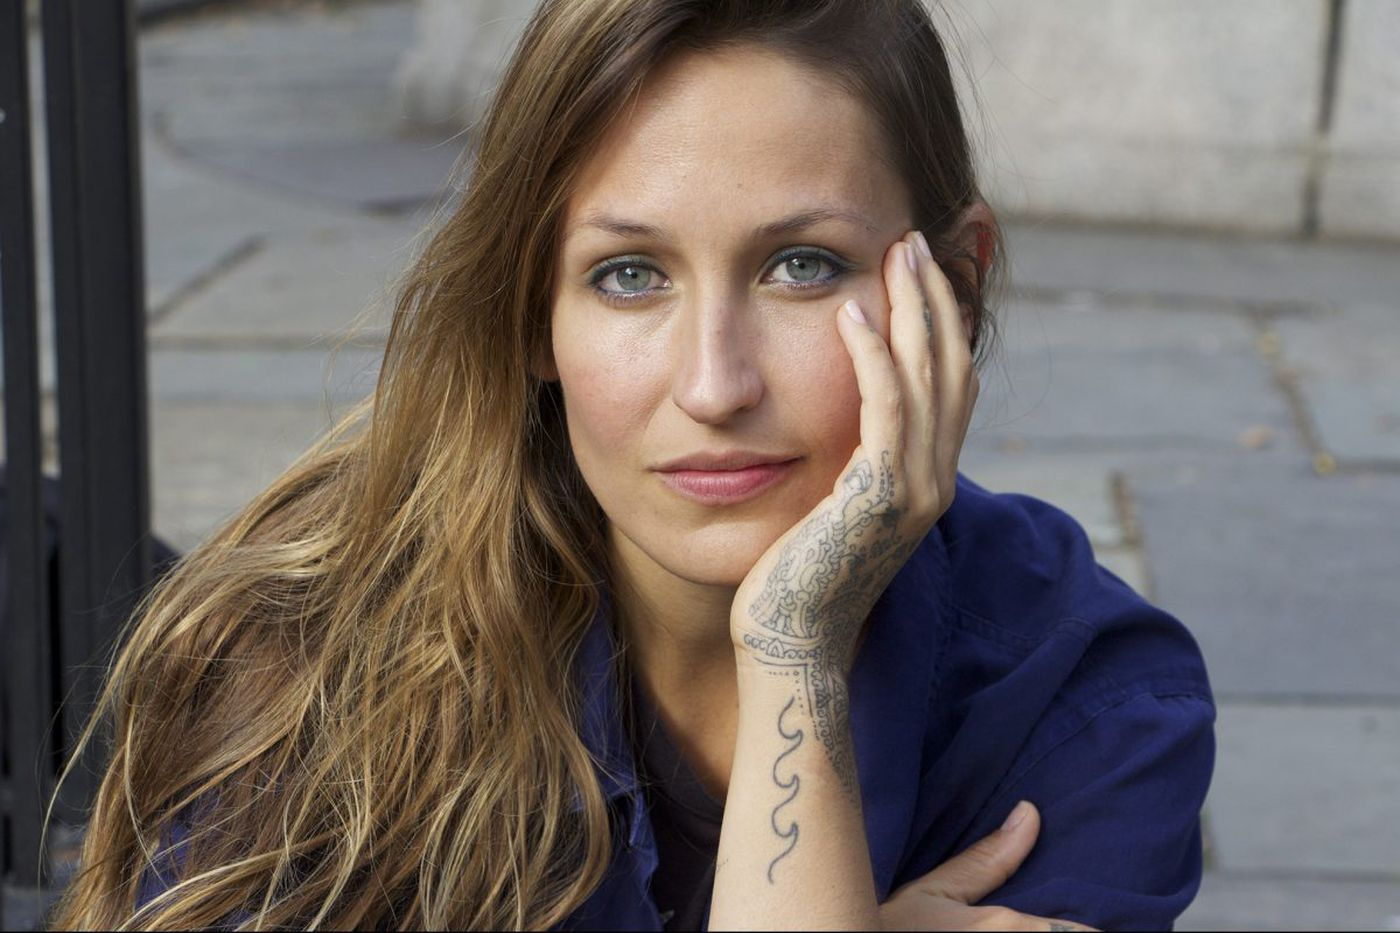 Domino Kirke defines herself outside of her famous family